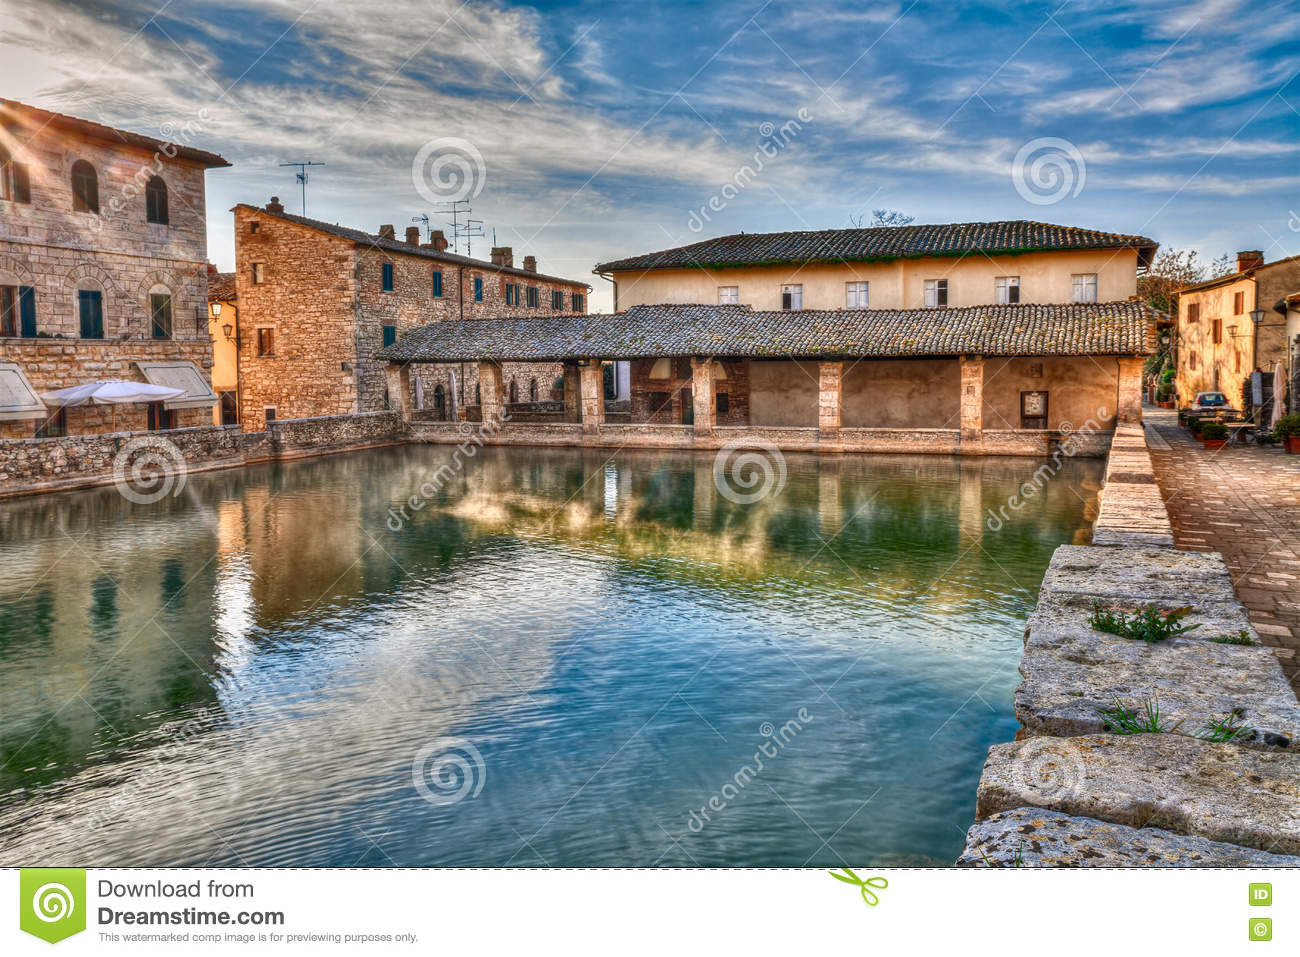 Bagno Vignoni Free Thermal Baths Old Thermal Baths In Bagno Vignoni Tuscany Italy Stock Photo